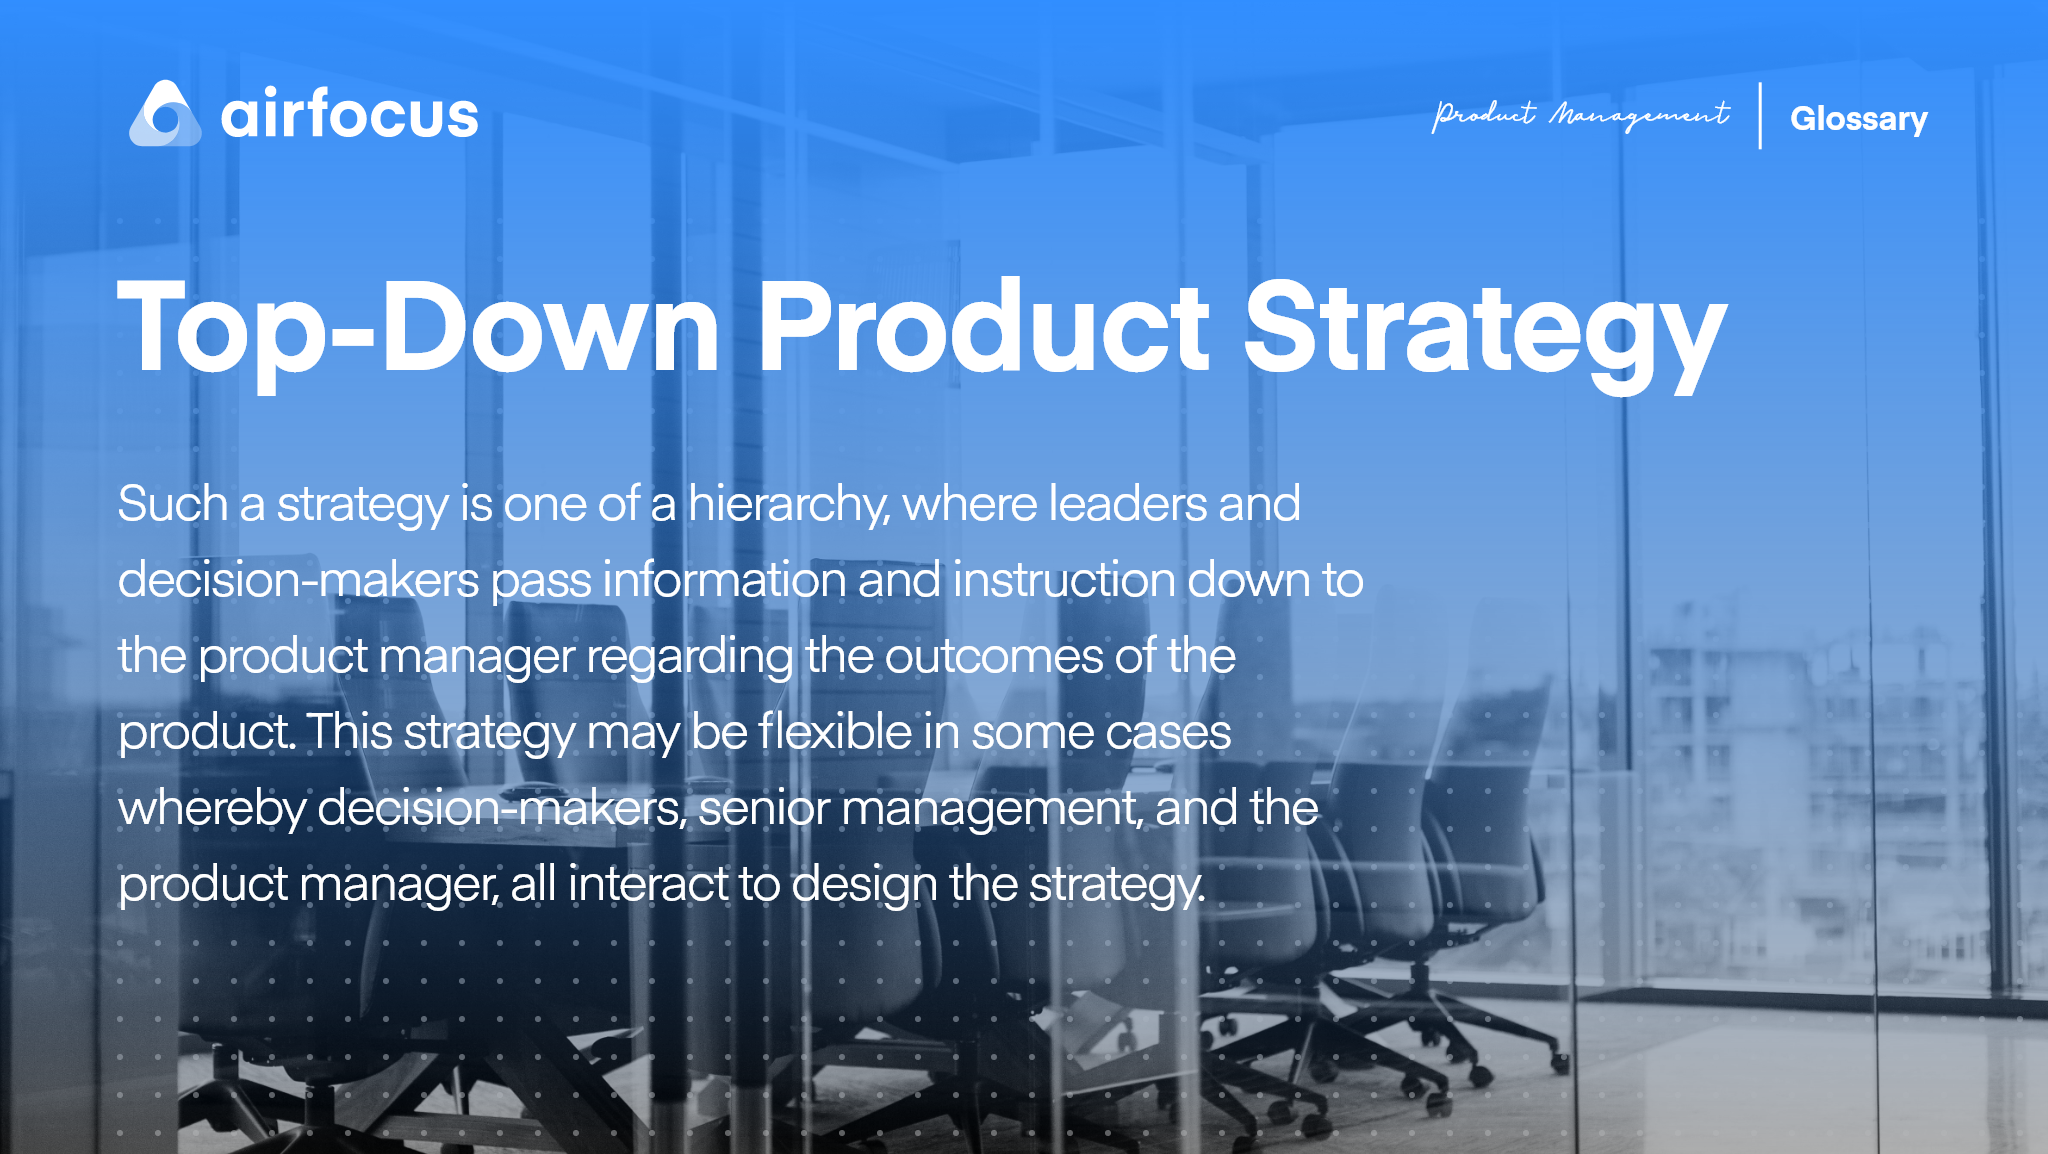 What is a Top-Down Product Strategy?